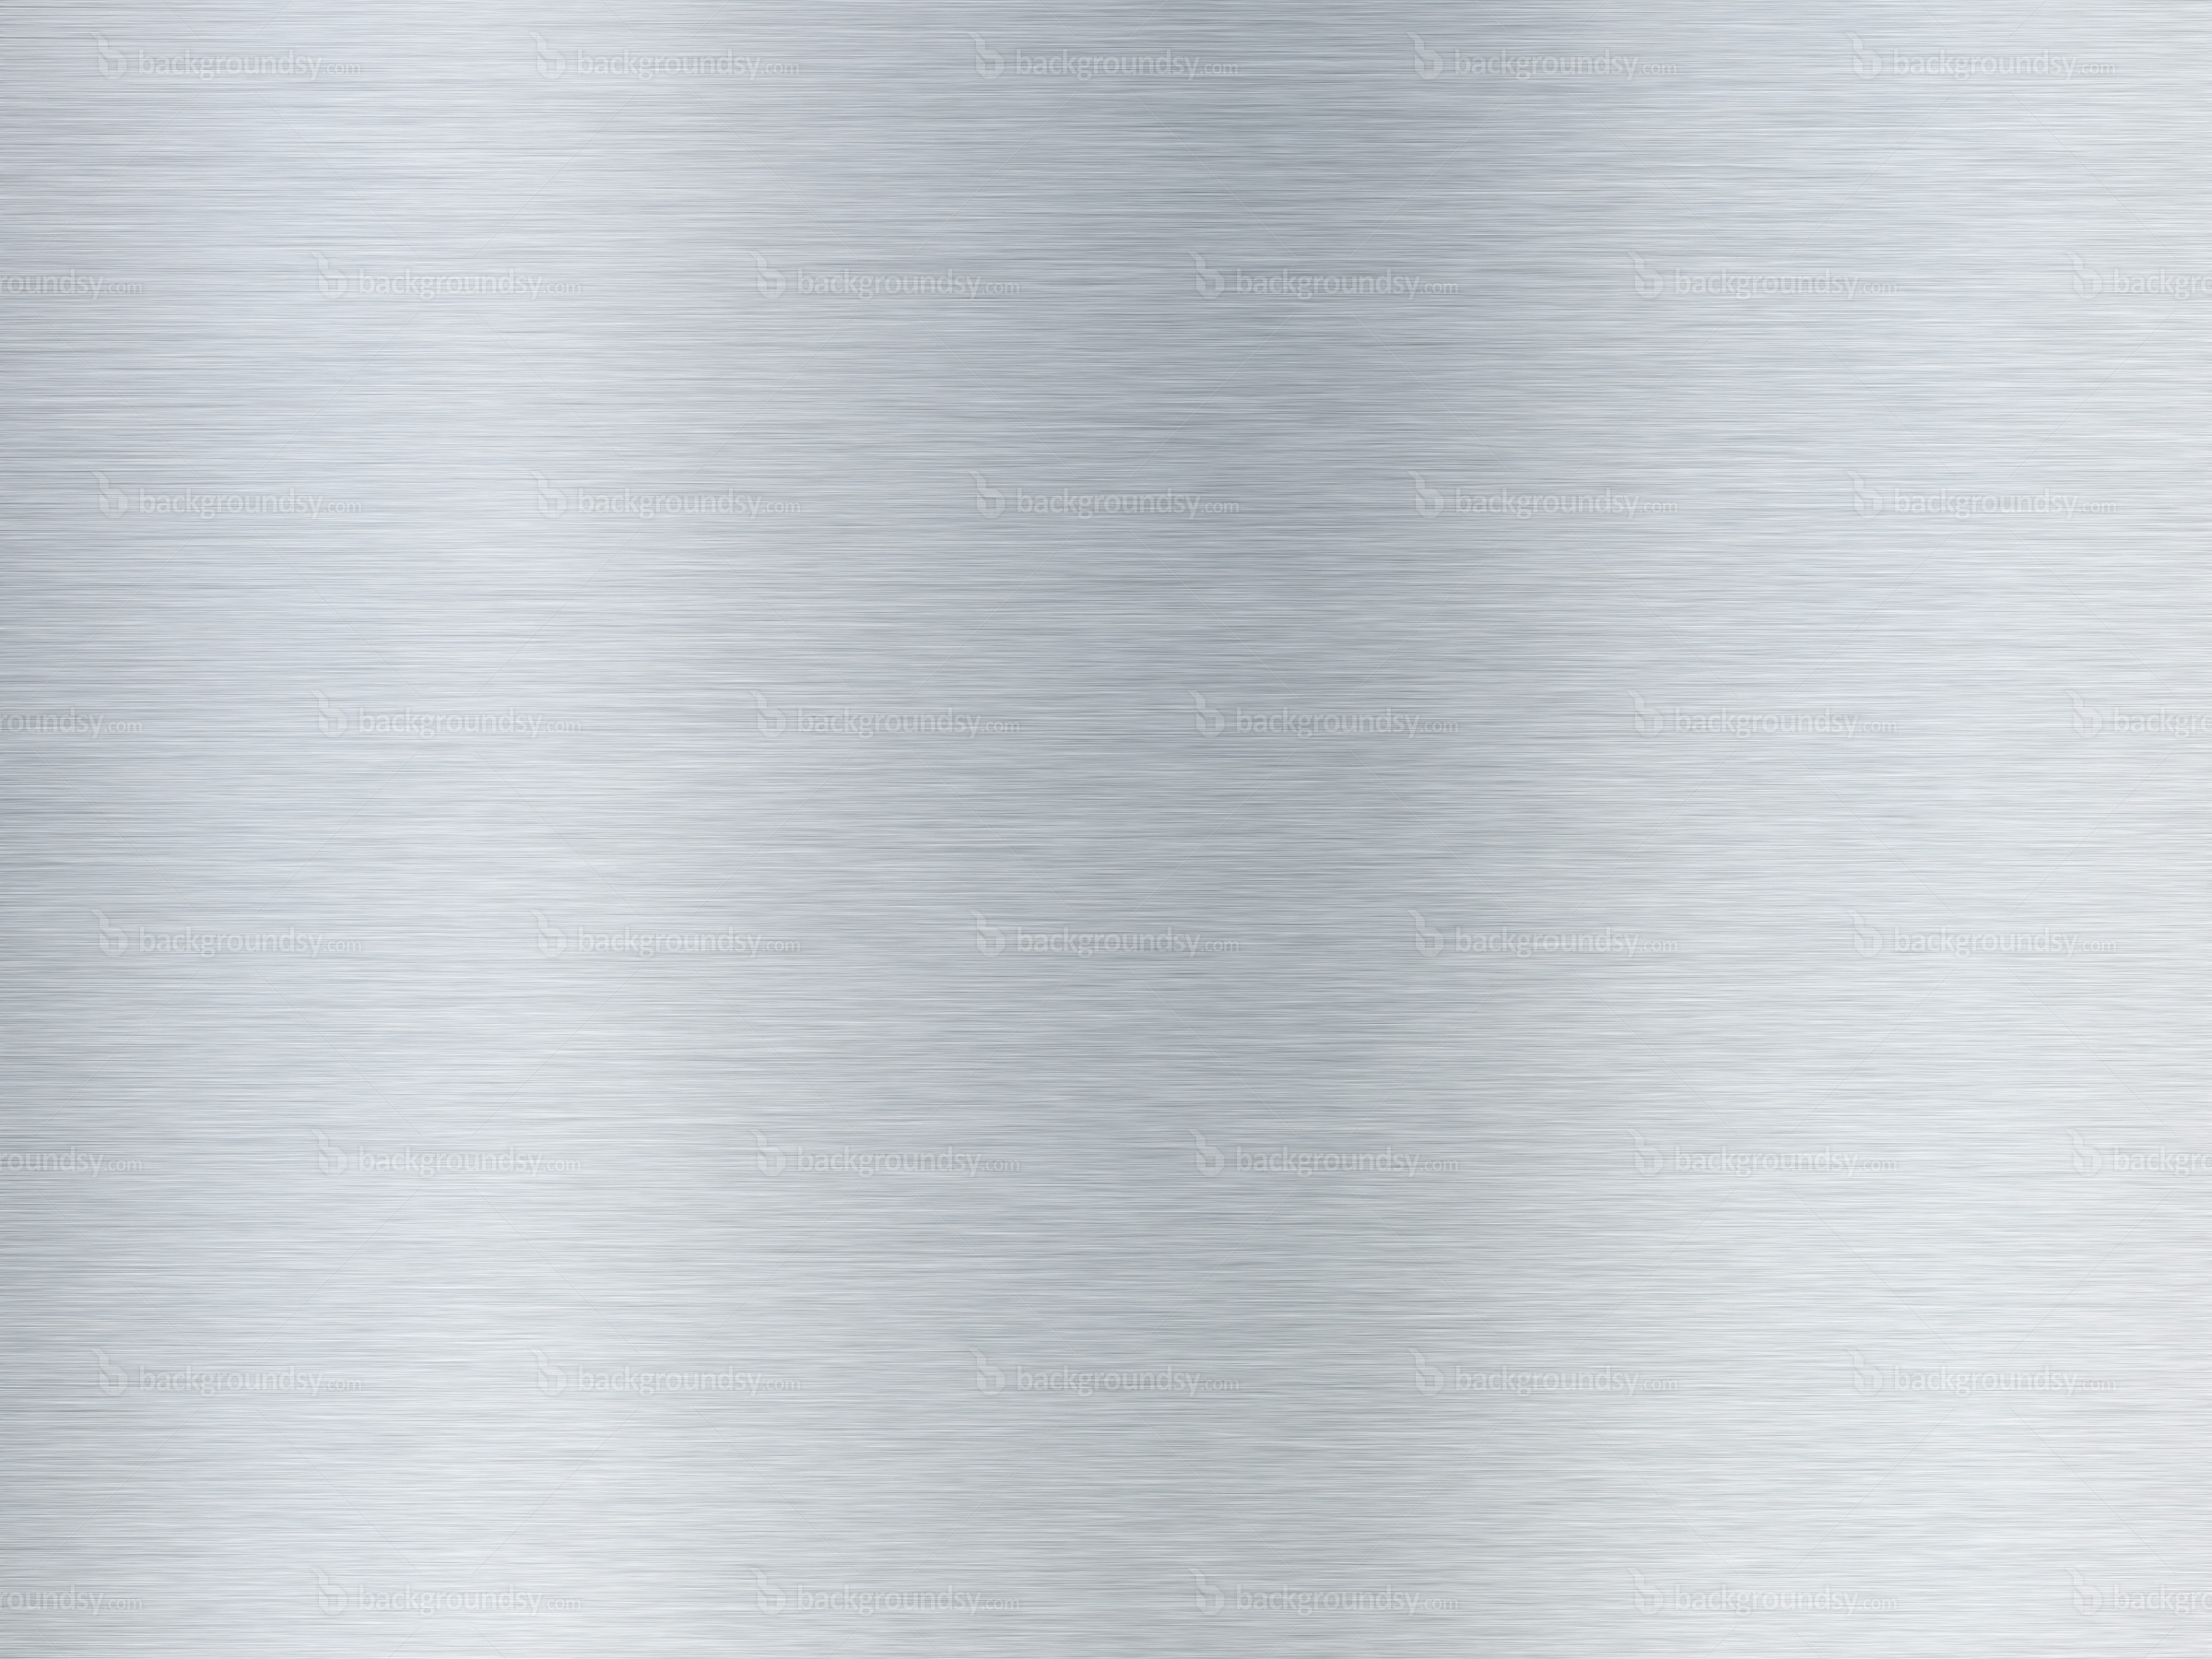 Silver background Backgroundsy 2400x1800